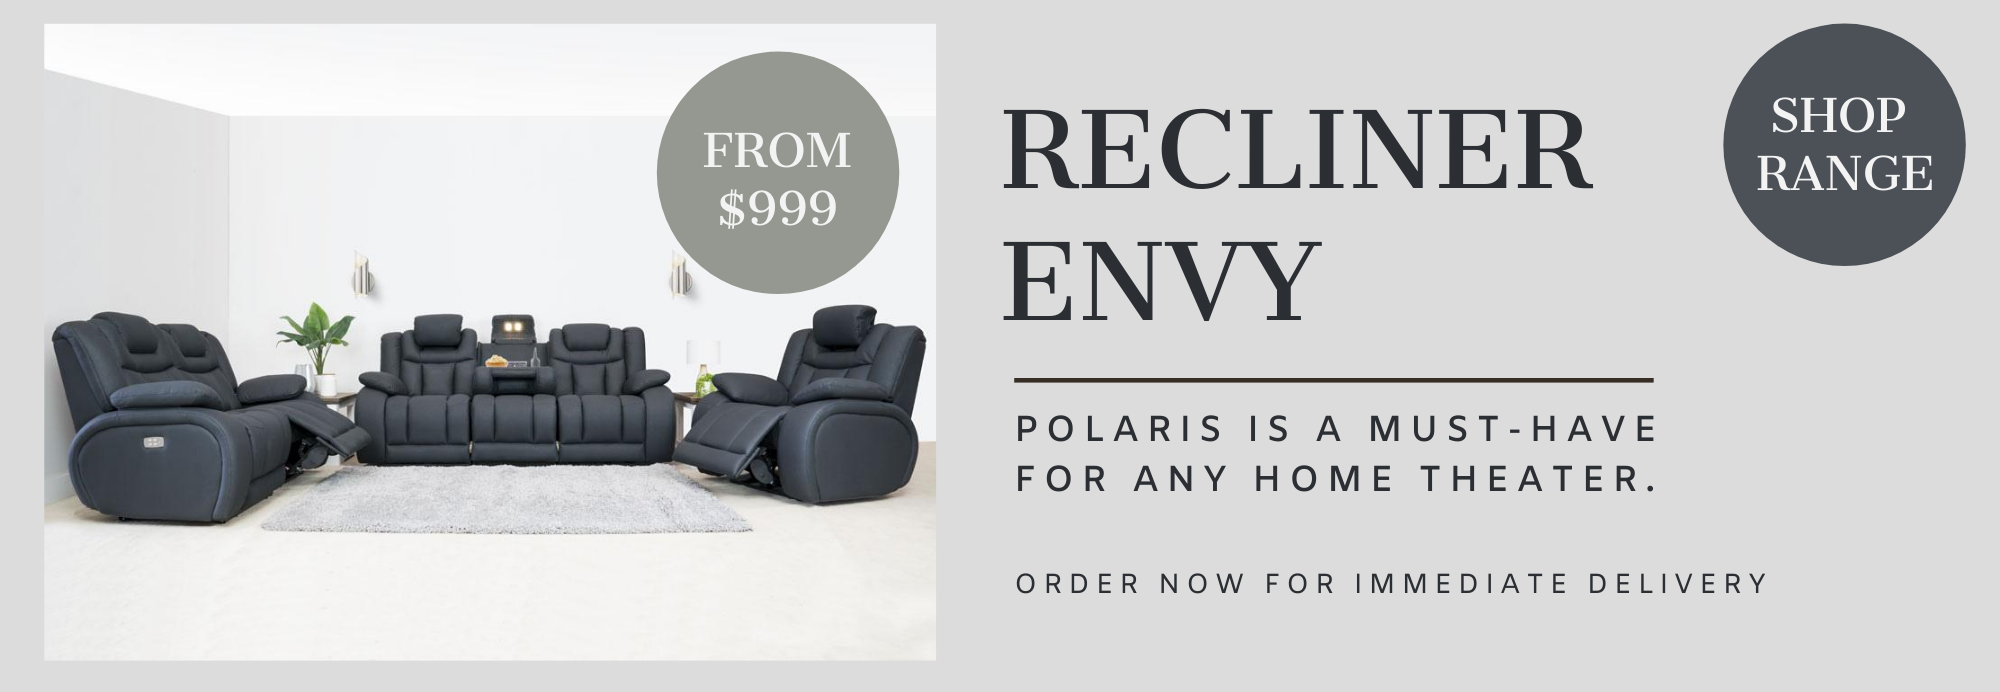 Shop Polaris Range